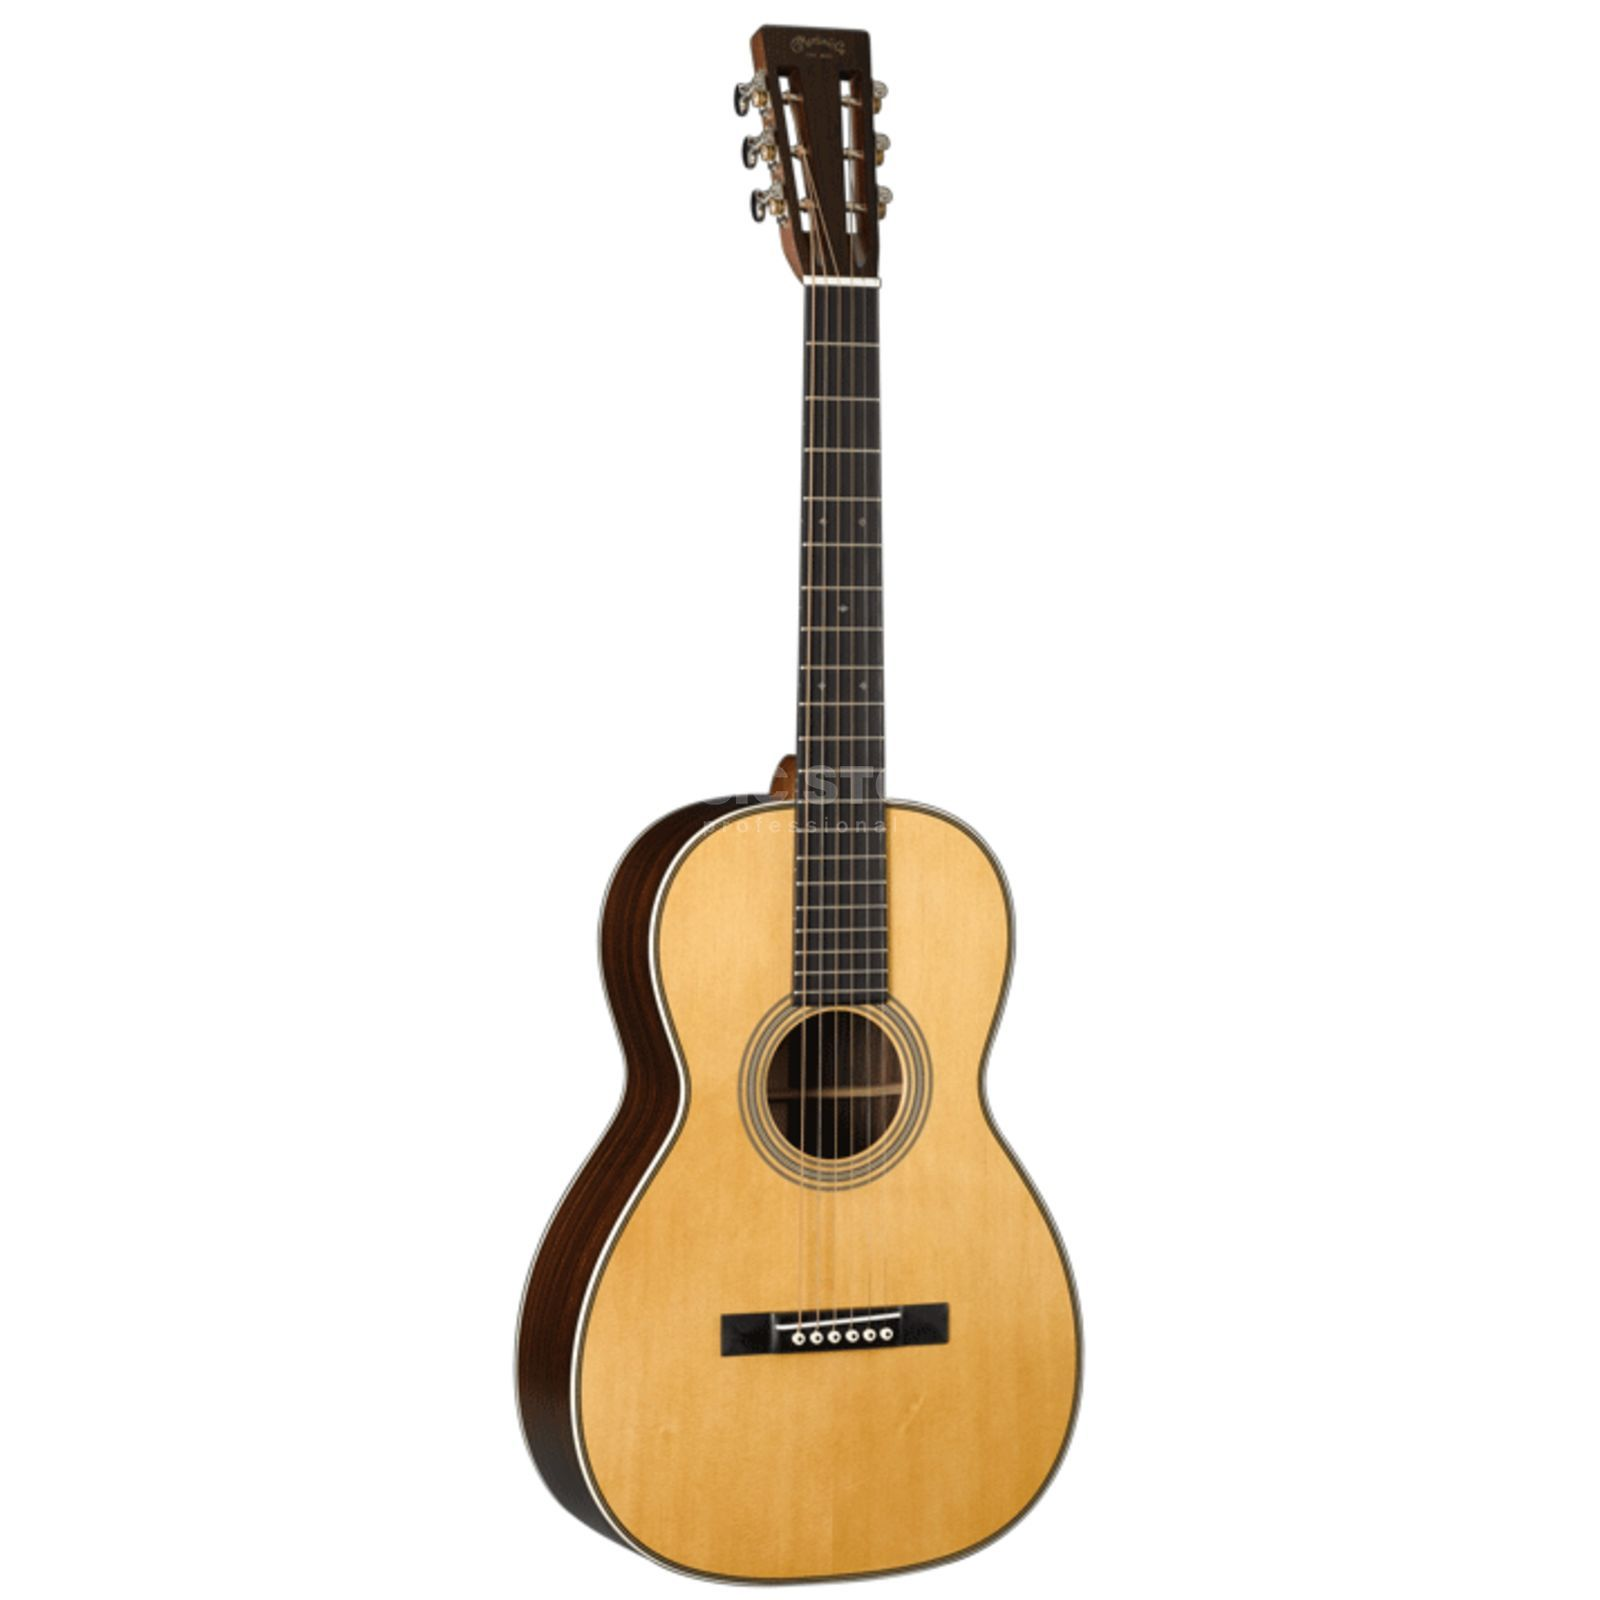 Martin Guitars 0-28VS Sunburst Image du produit